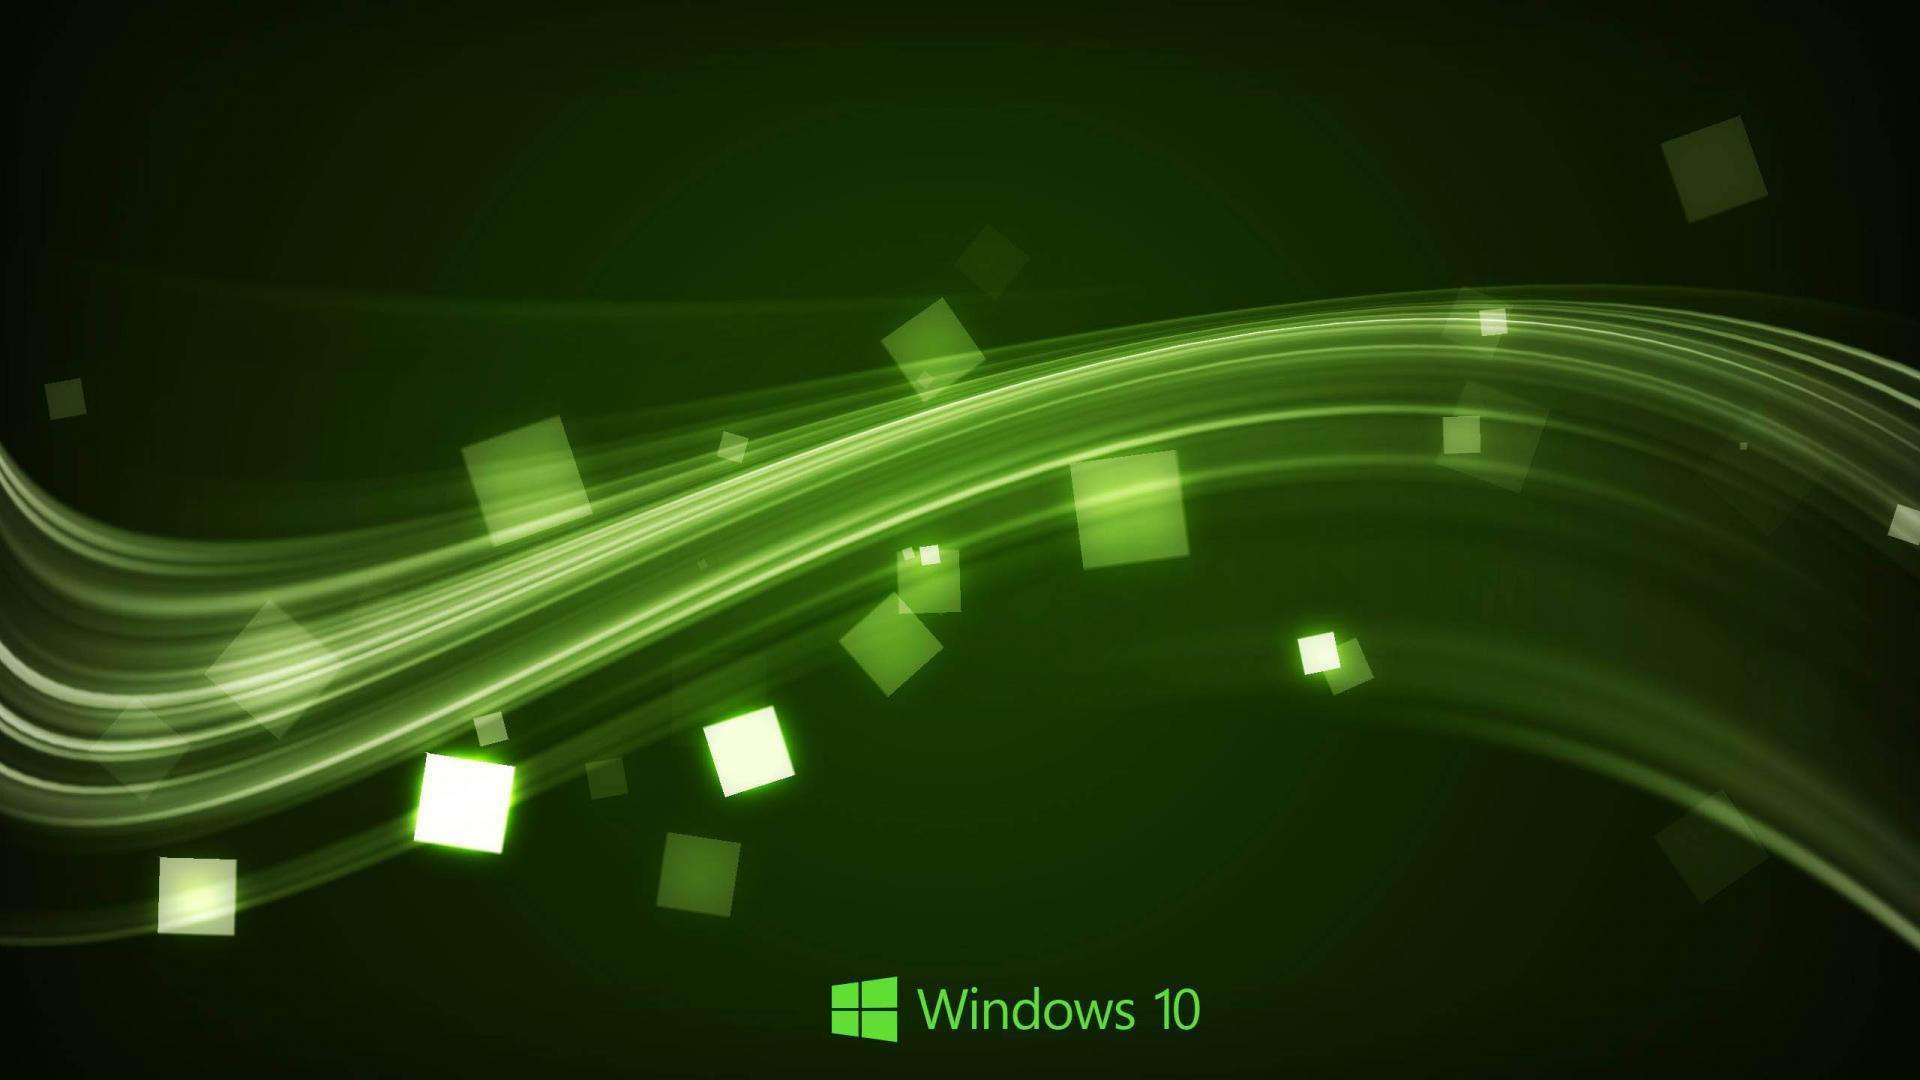 1920x1080 Wallpaper: Windows 10 Hd Wallpaper 1080p. Upload at June 9, 2015 by .